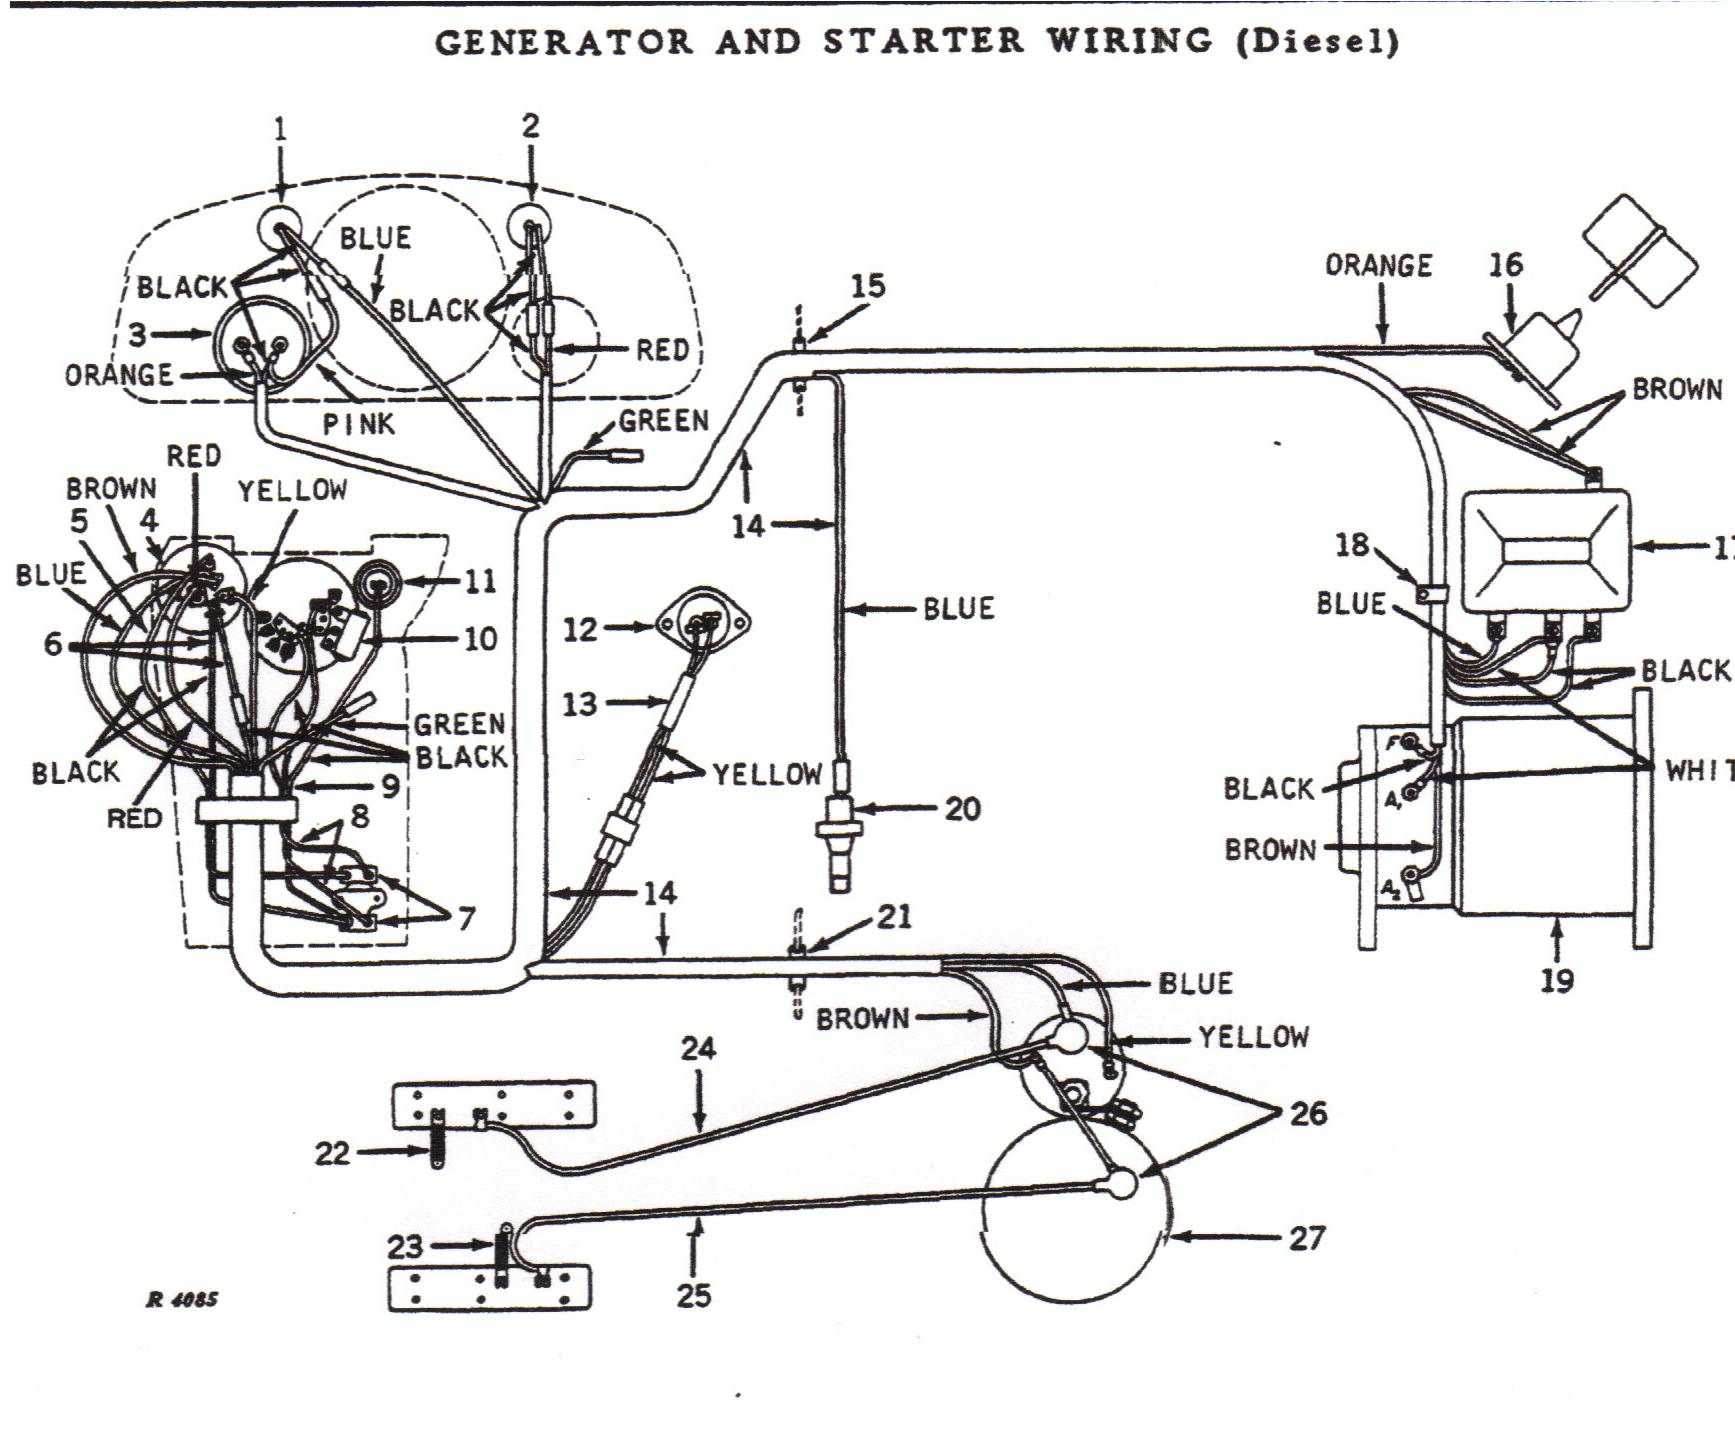 2015 03 06_134500_john_deere_4010_wiring i have a 1966 jd 3020 gas engine it will start and run and when it john deere 3020 gas wiring diagram at gsmportal.co